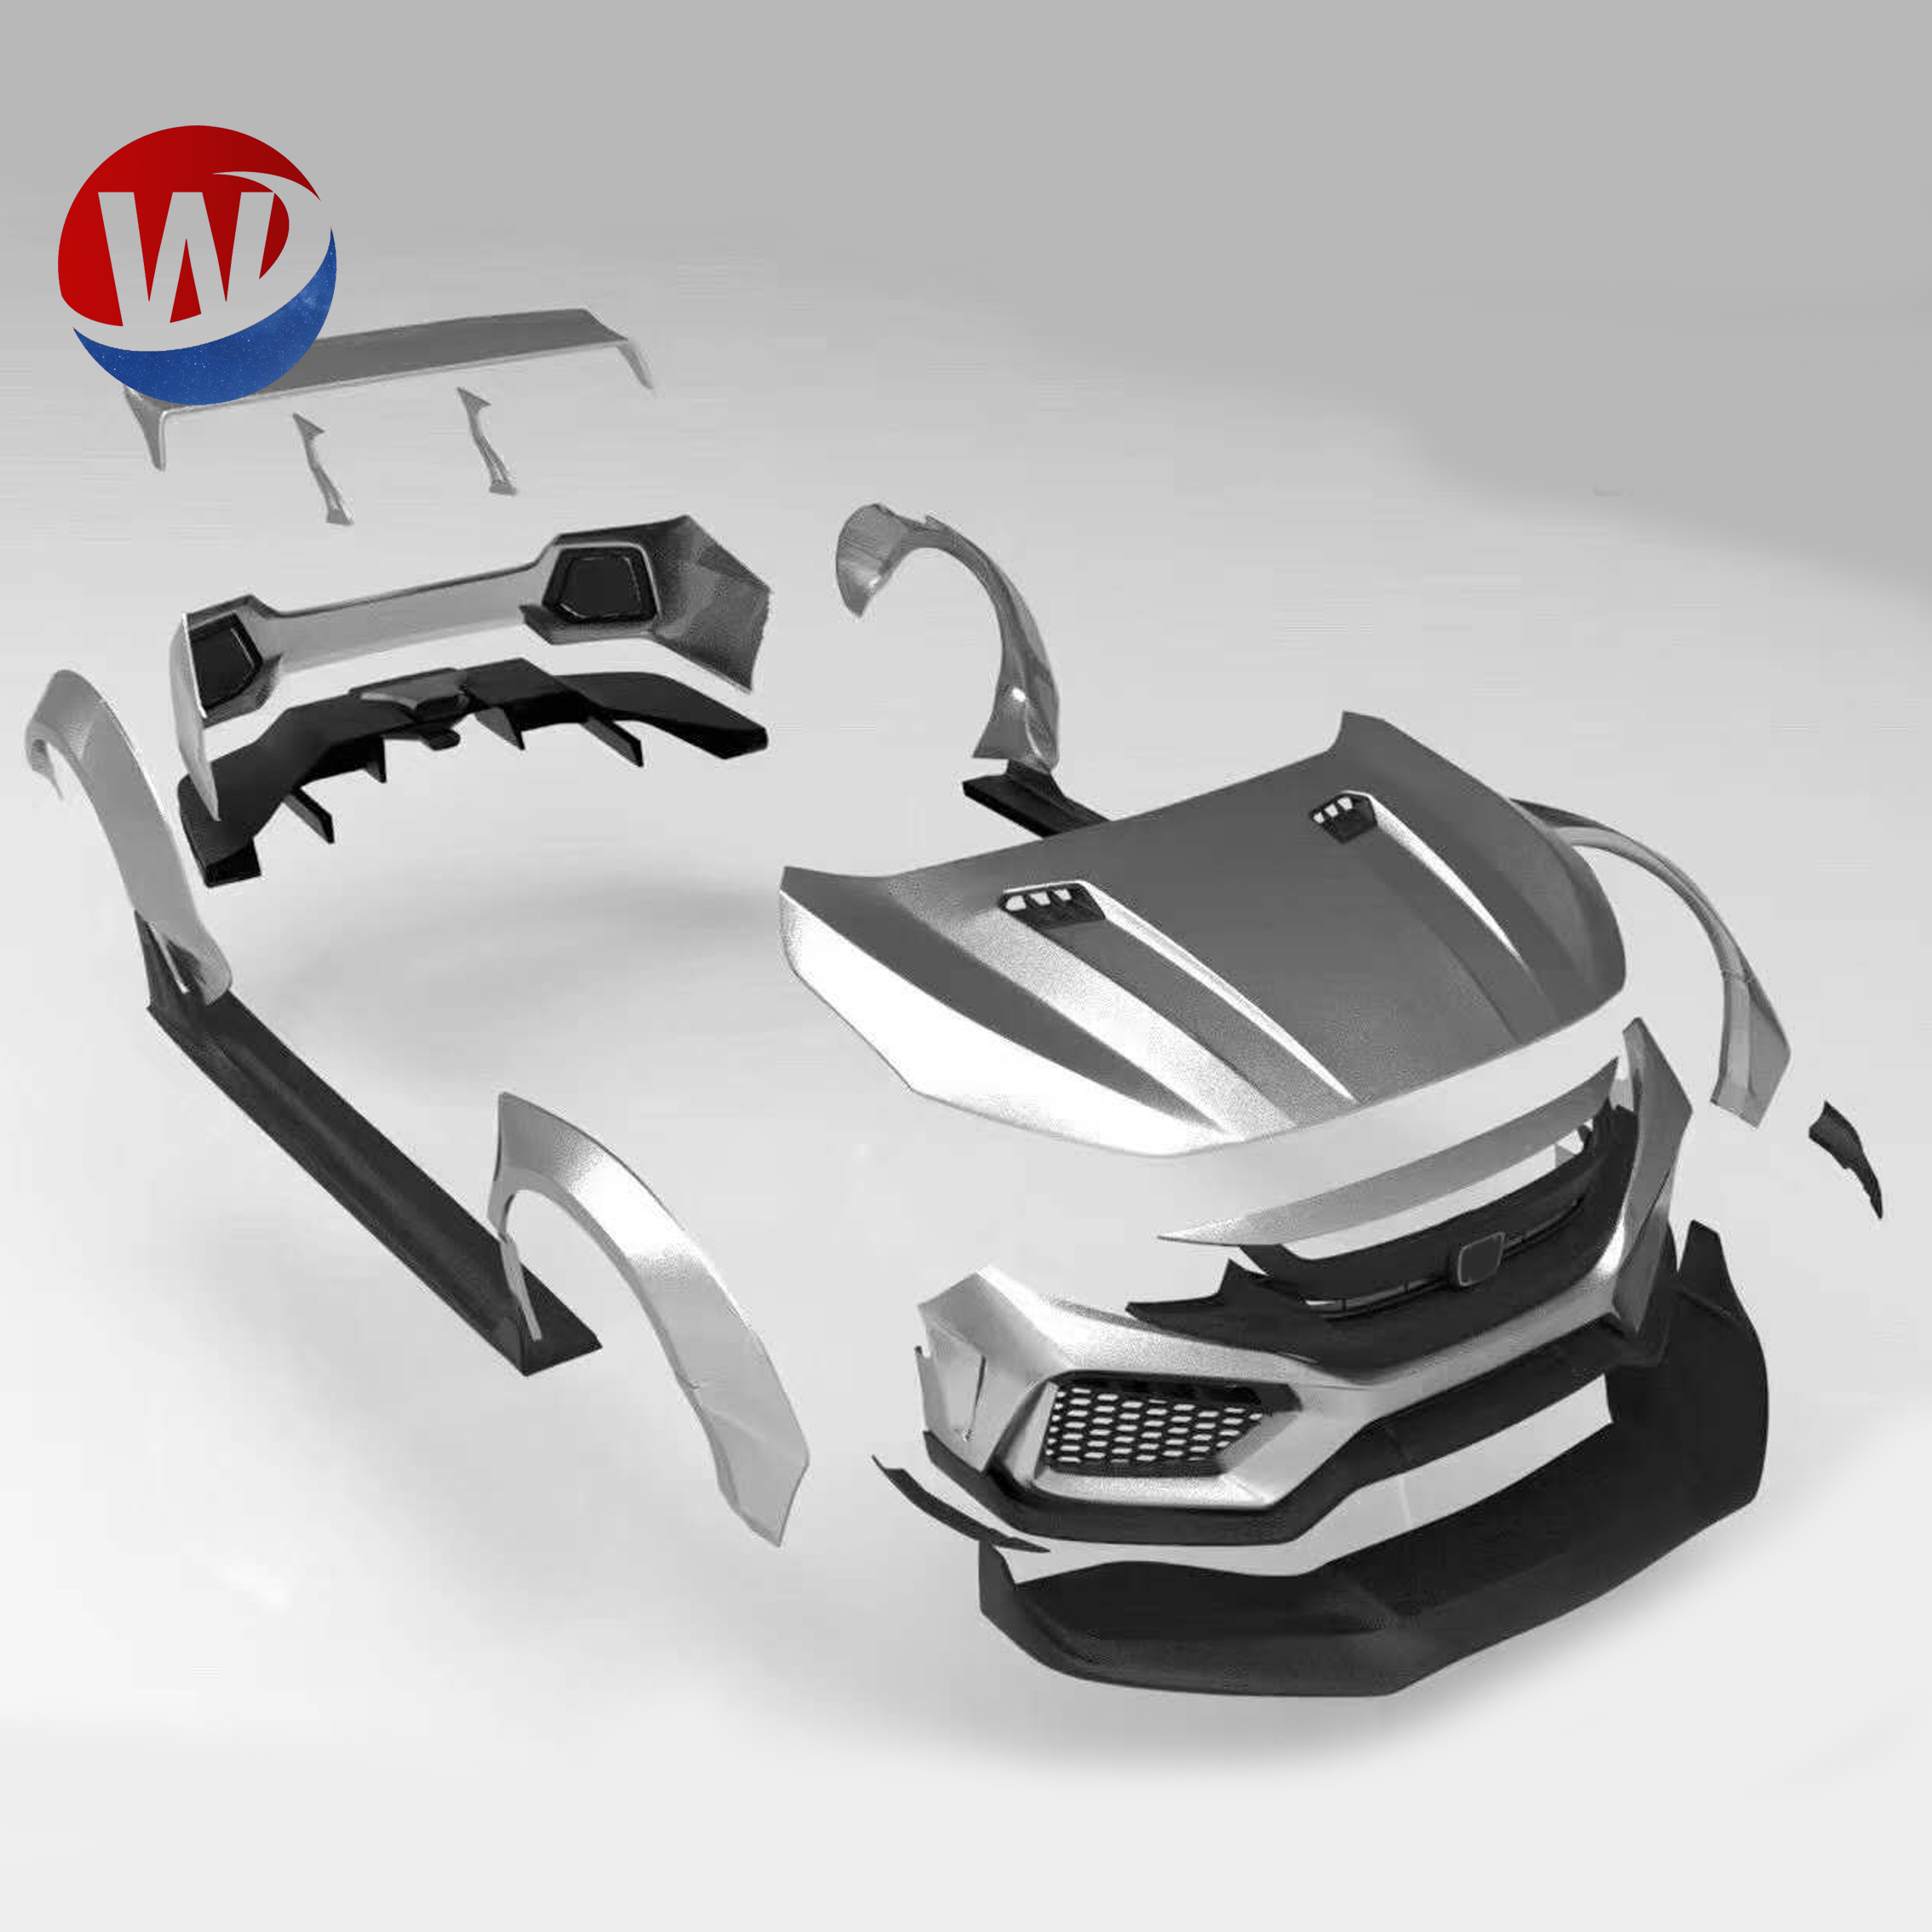 Frp Body Kits For Honda Civic 2016 2019 Upgrade To Robot Craftsman Style Front Bumper Side Skirt Rear Bumper Hood Wheel Flare Buy Body Kit For Honda Jazz Product On Alibaba Com